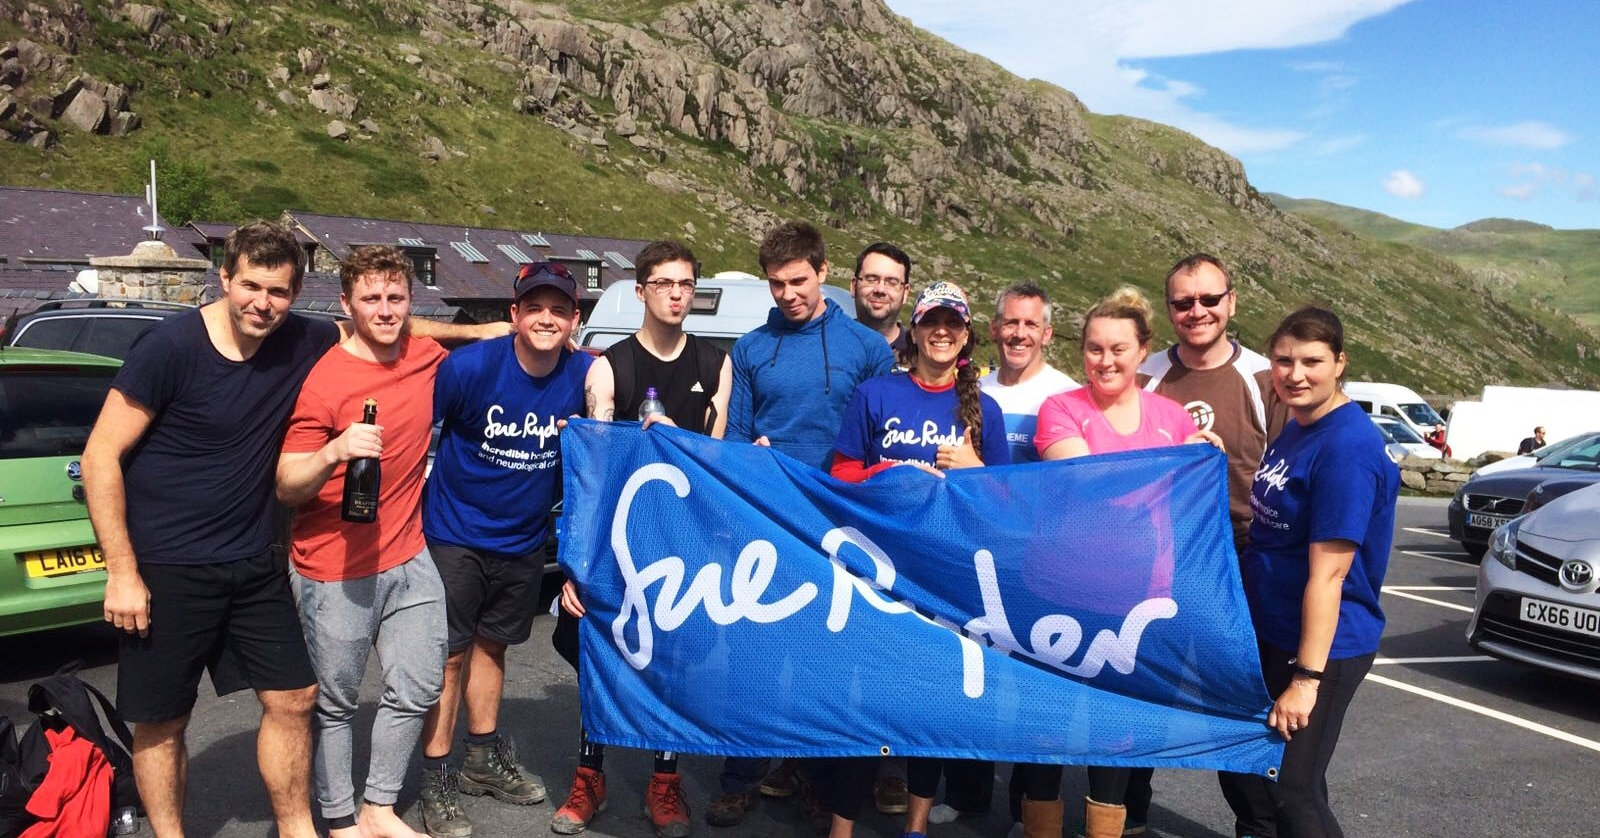 Scaling mountains in the name of charity